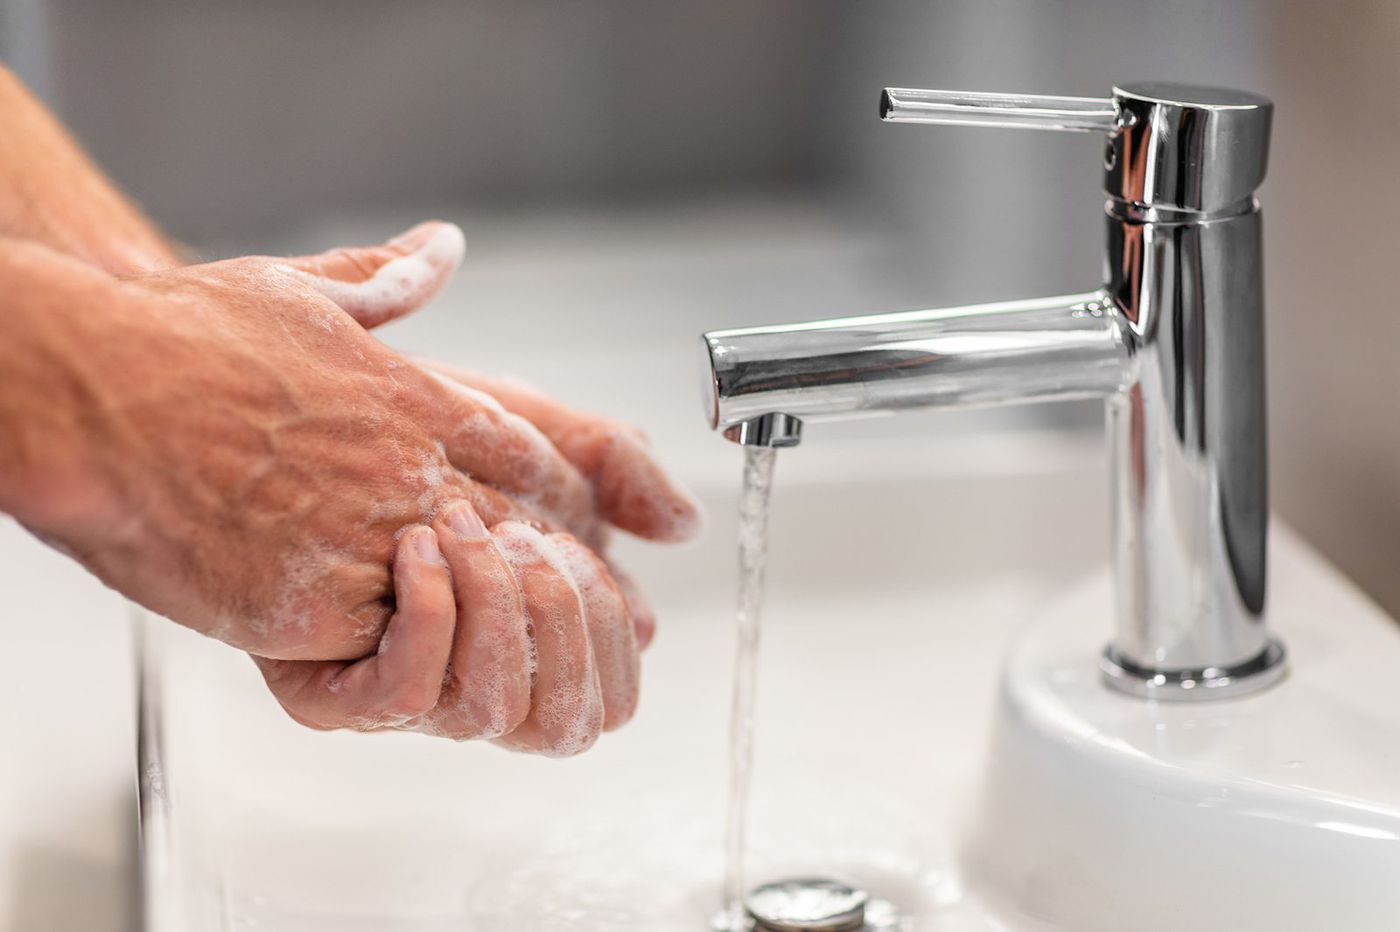 In the COVID-19 era, is it possible to take cleanliness too far? | Expert Opinion